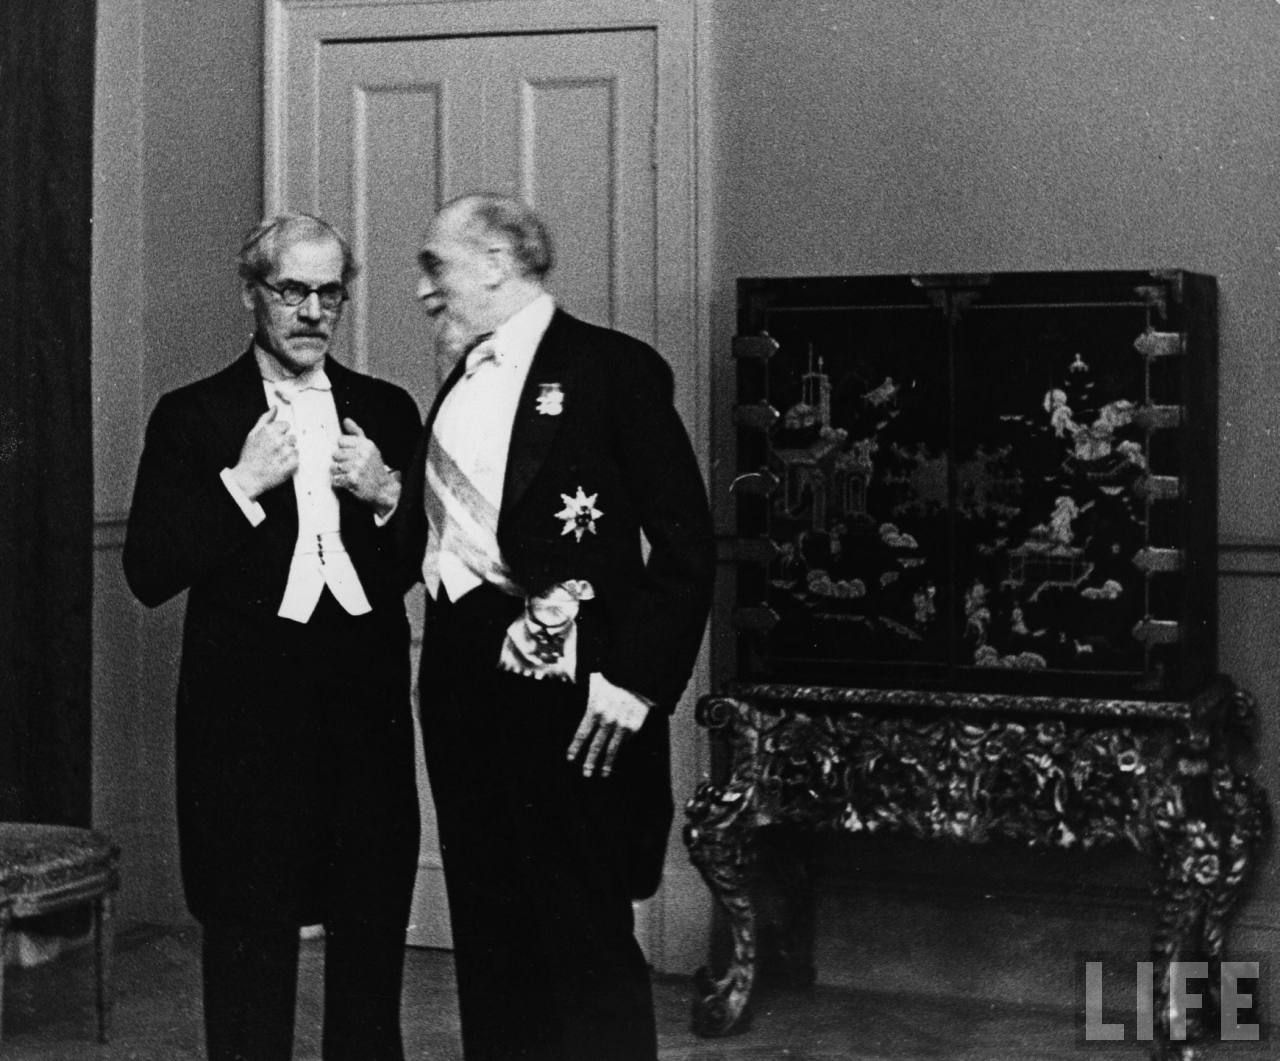 L R Prime Minister Ramsay Macdonald Of Great Britain And Governor Of The Bank Of England Montague Norman Attending Diplomatic Reception At Austrian Legation